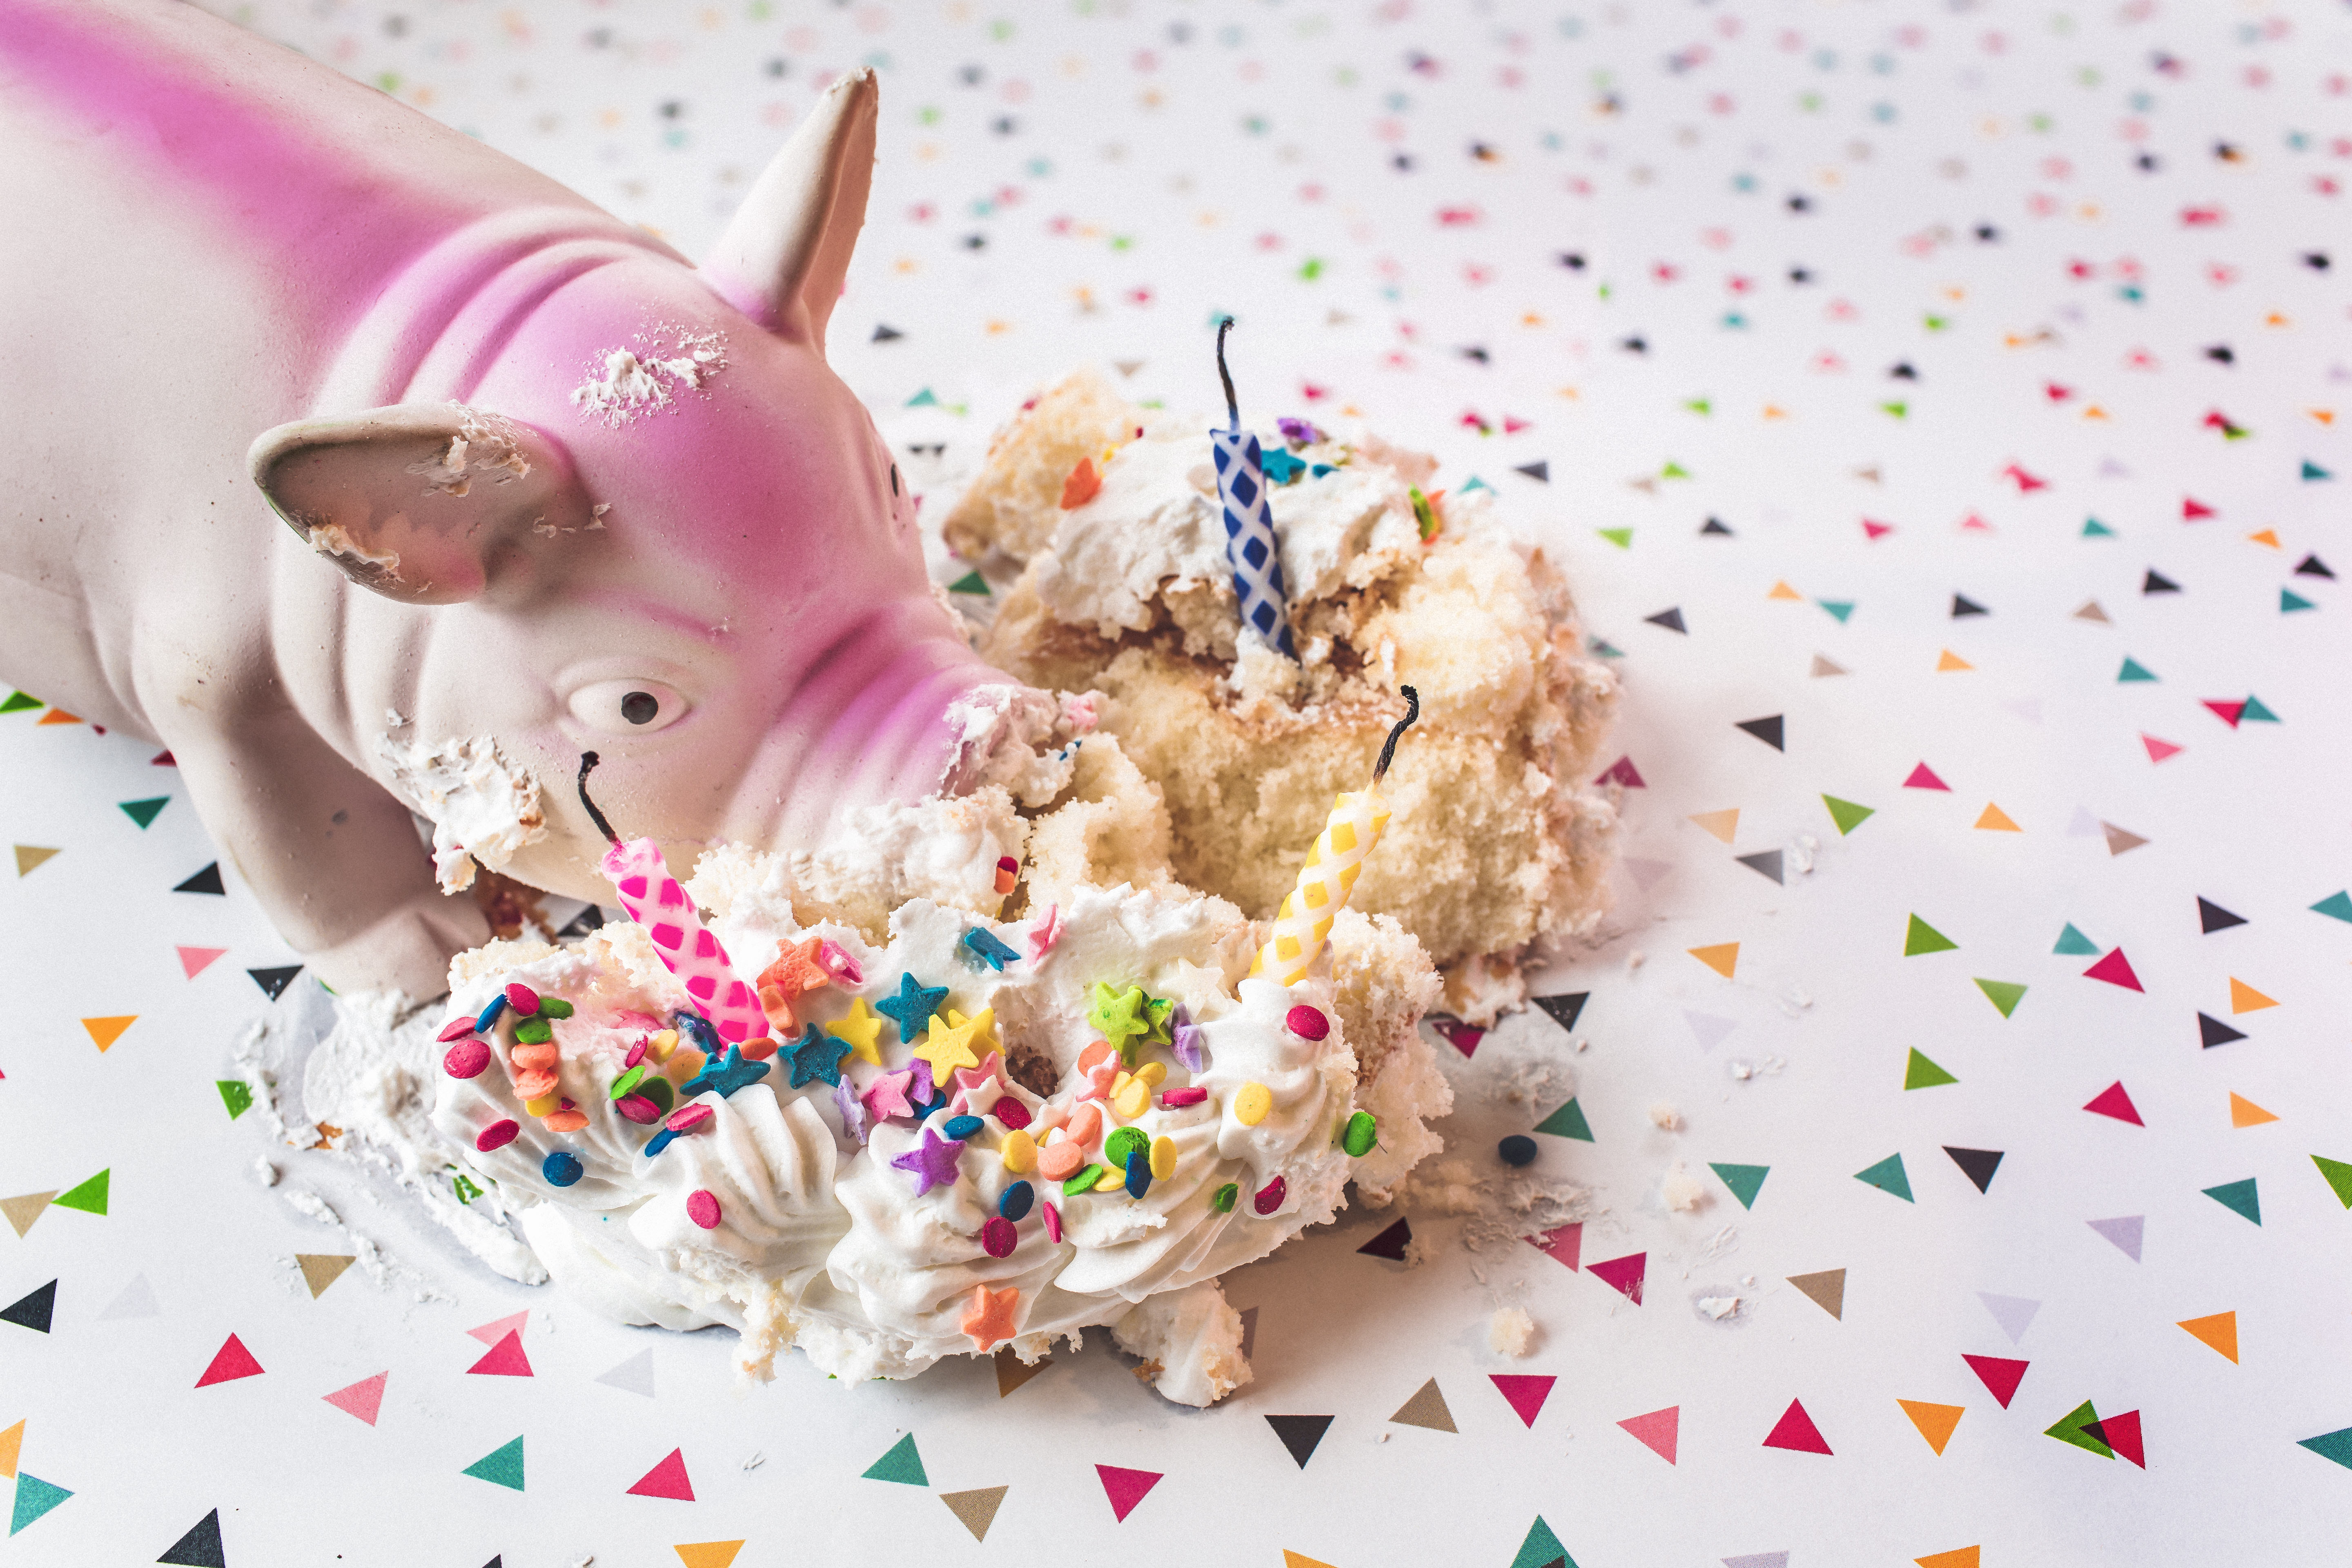 gratisography-pig and binging on cake celebrate your successes